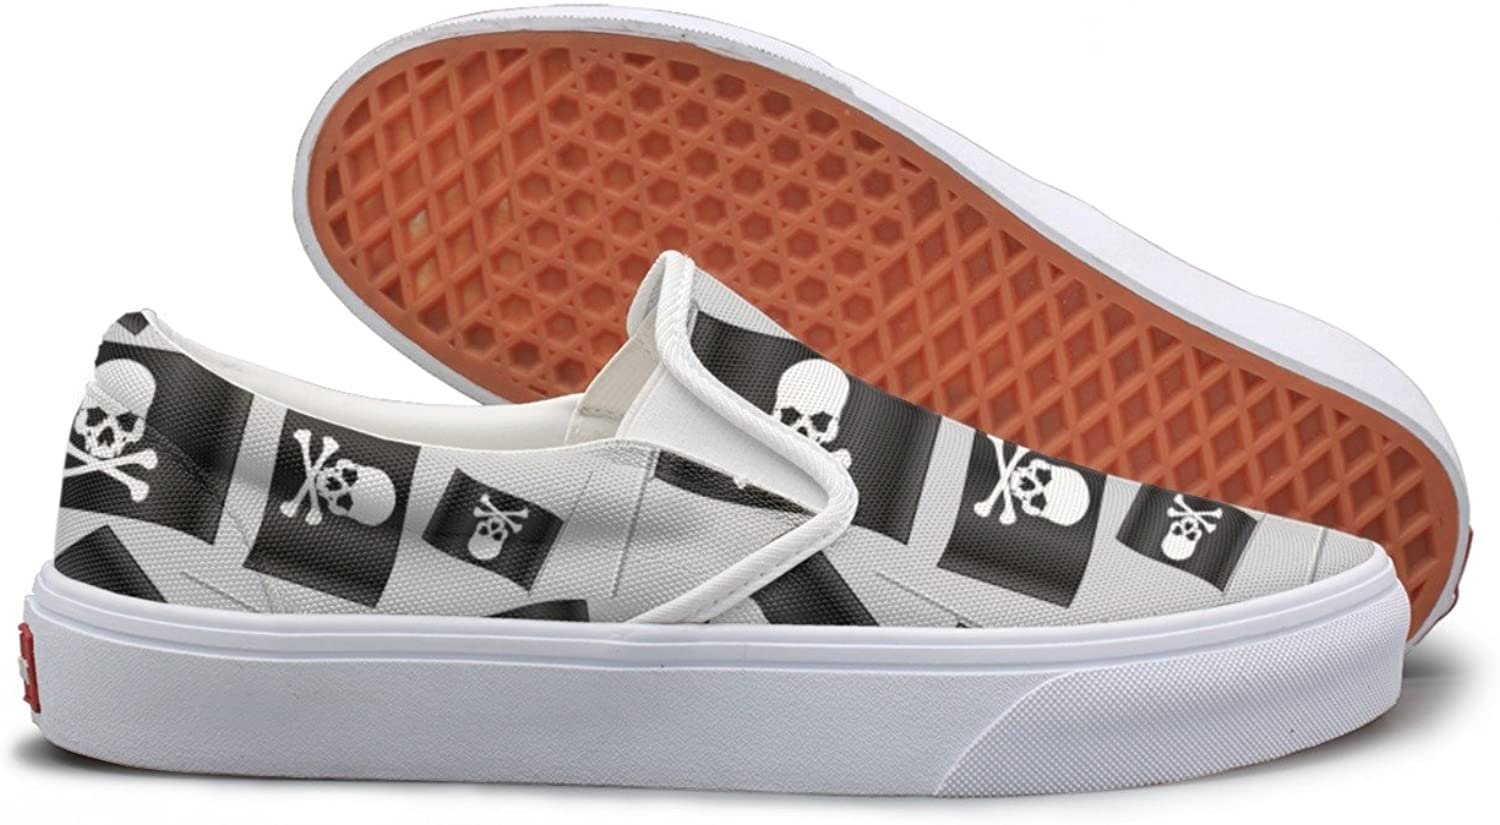 SEERTED Black Small Pirate Flag with Skull and Bones Comfortable Sneakers for Women Walking